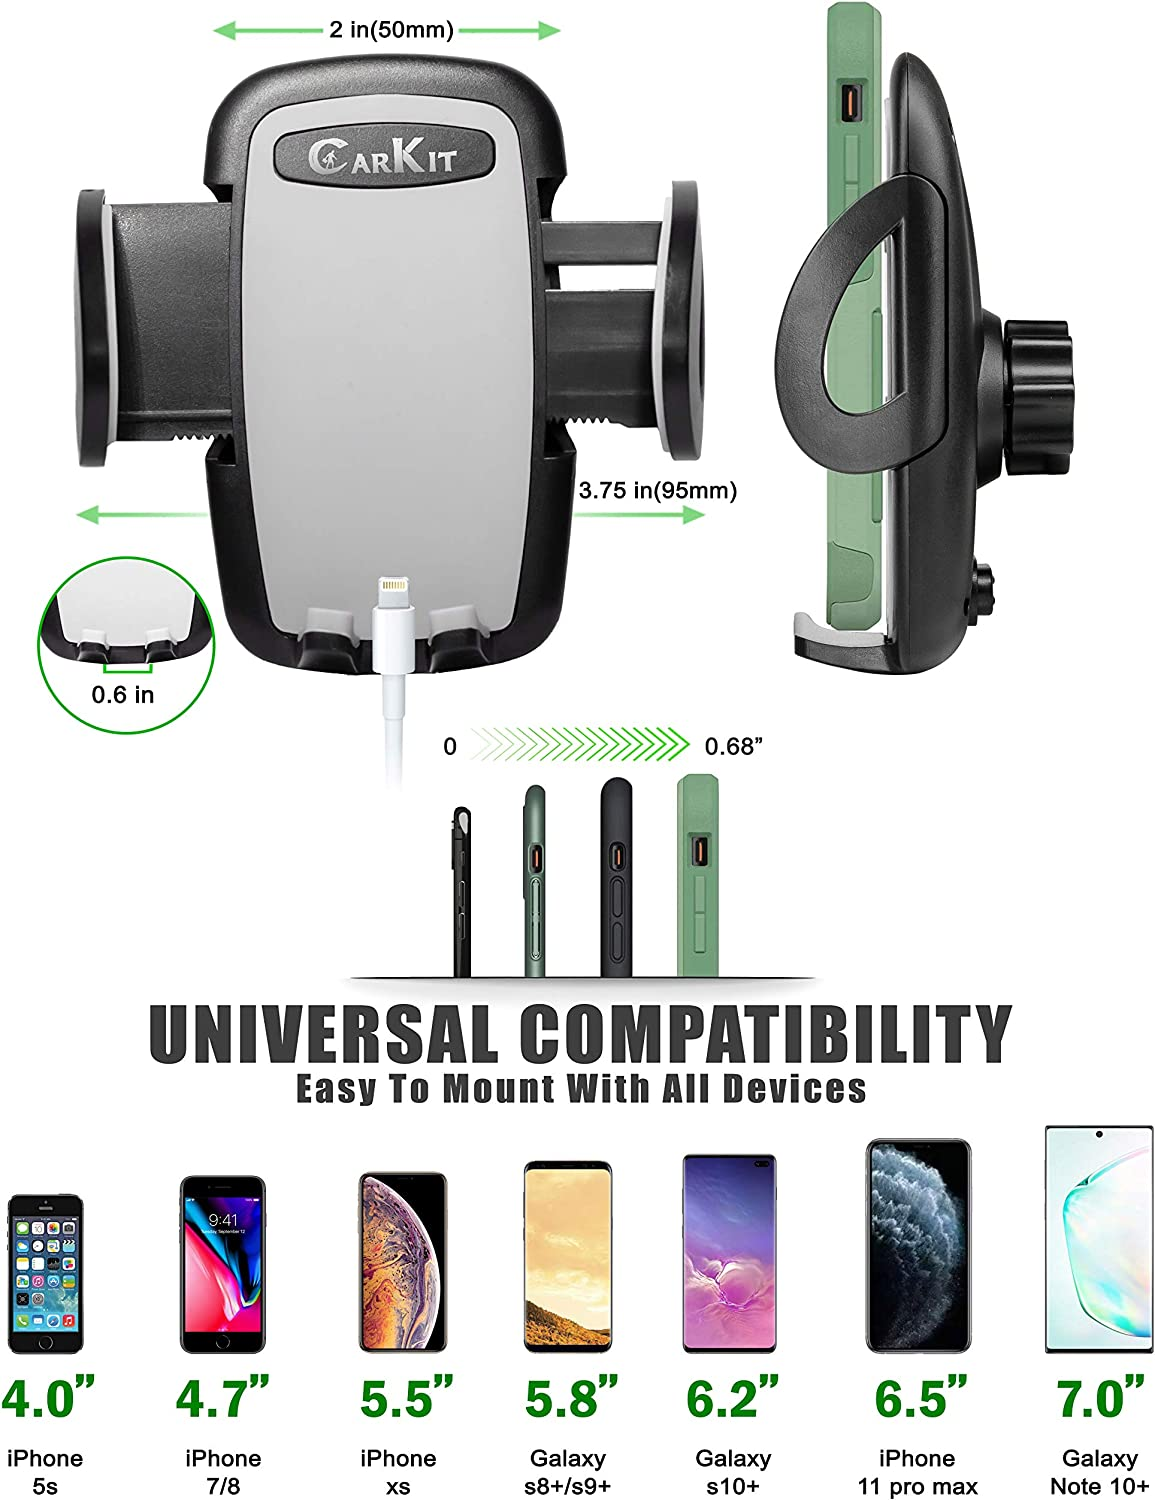 CarKit 2-in-1 CD Phone Holder for Car /& Air Vent Phone Holder /& Bonus USB Car Charger 7 Samsung Galaxy S10 Universal Car Phone Mount for iPhone 11 Pro Max Xs Xr 8 S8 S7 /& other Cell Phones S10 S9